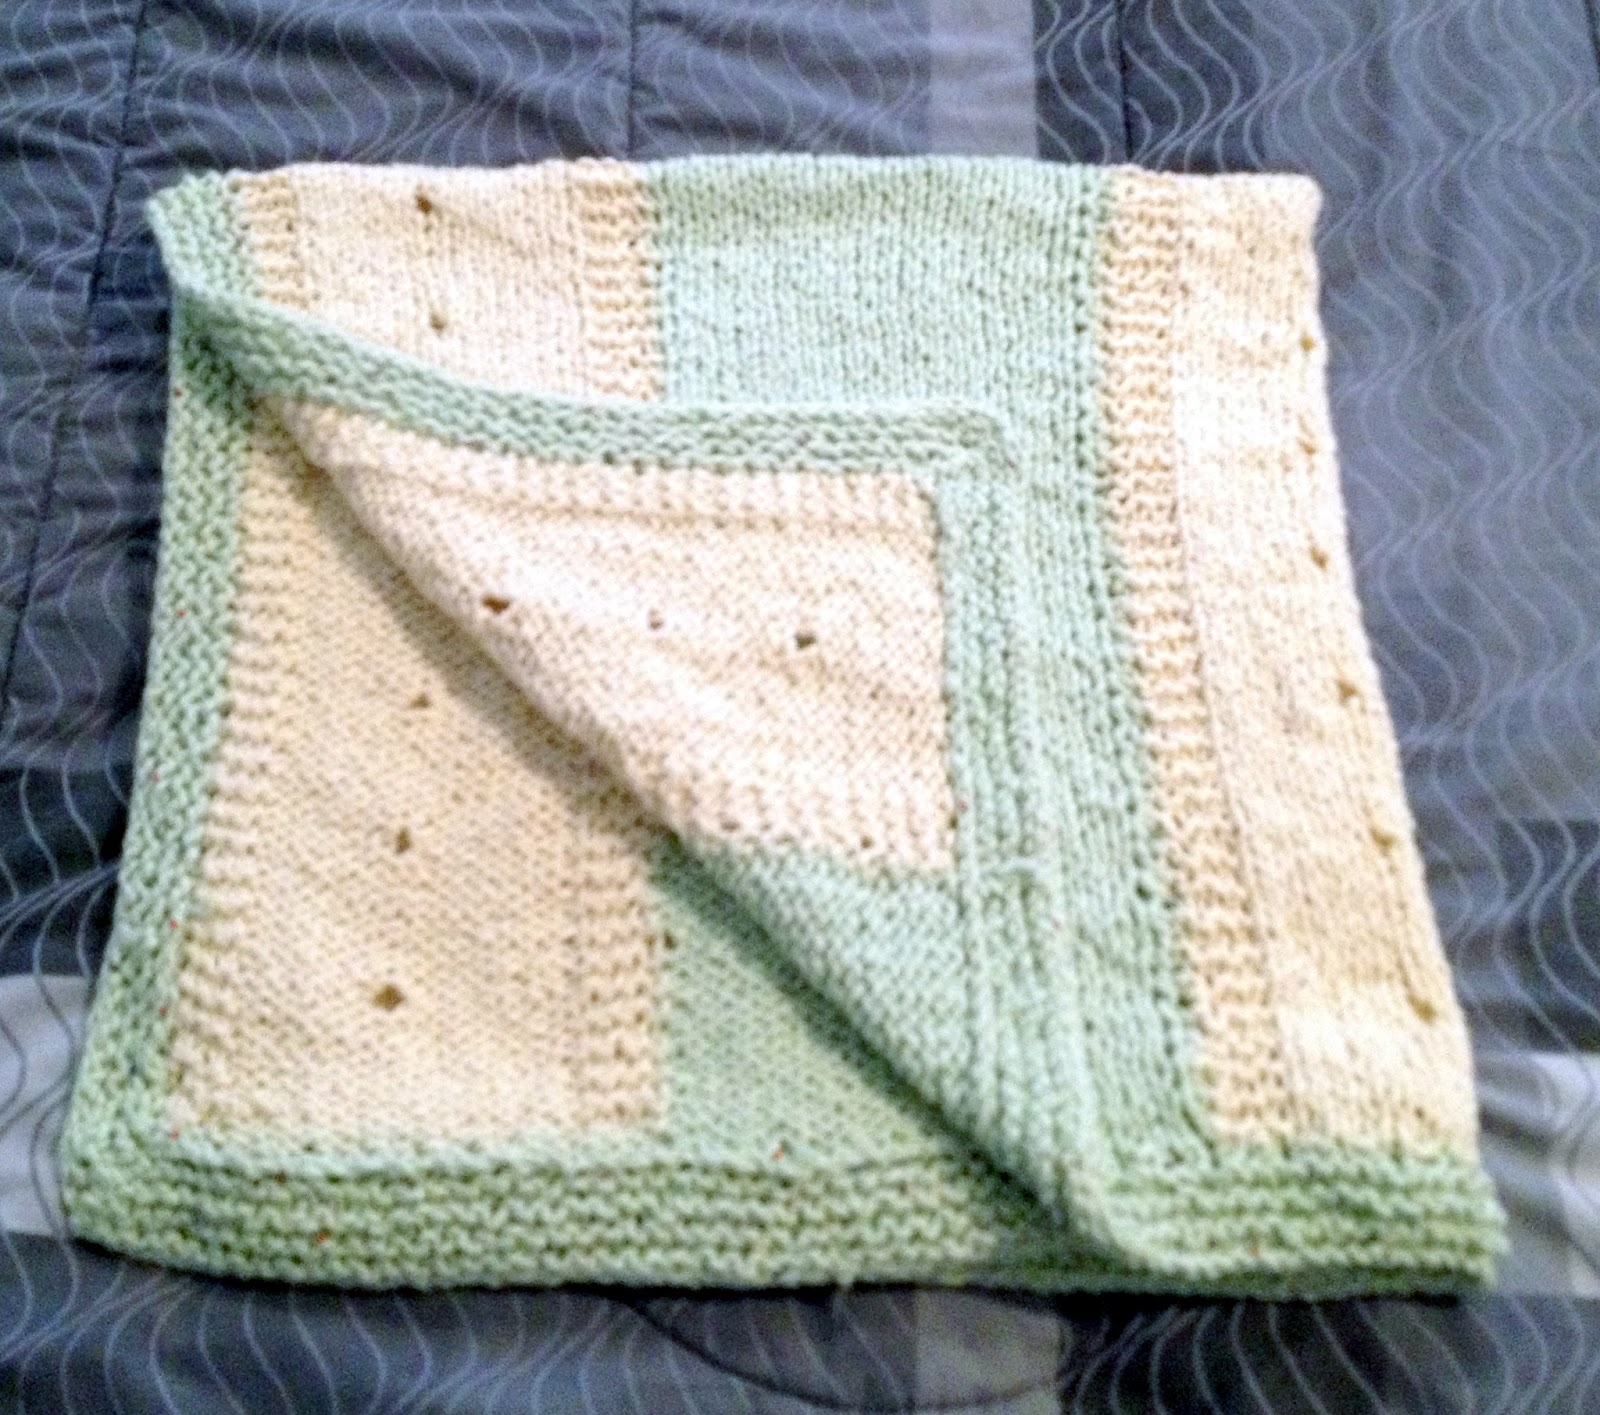 Striped Baby Blanket with Eyelets Knitting Pattern (FREE download) Out Now! -...